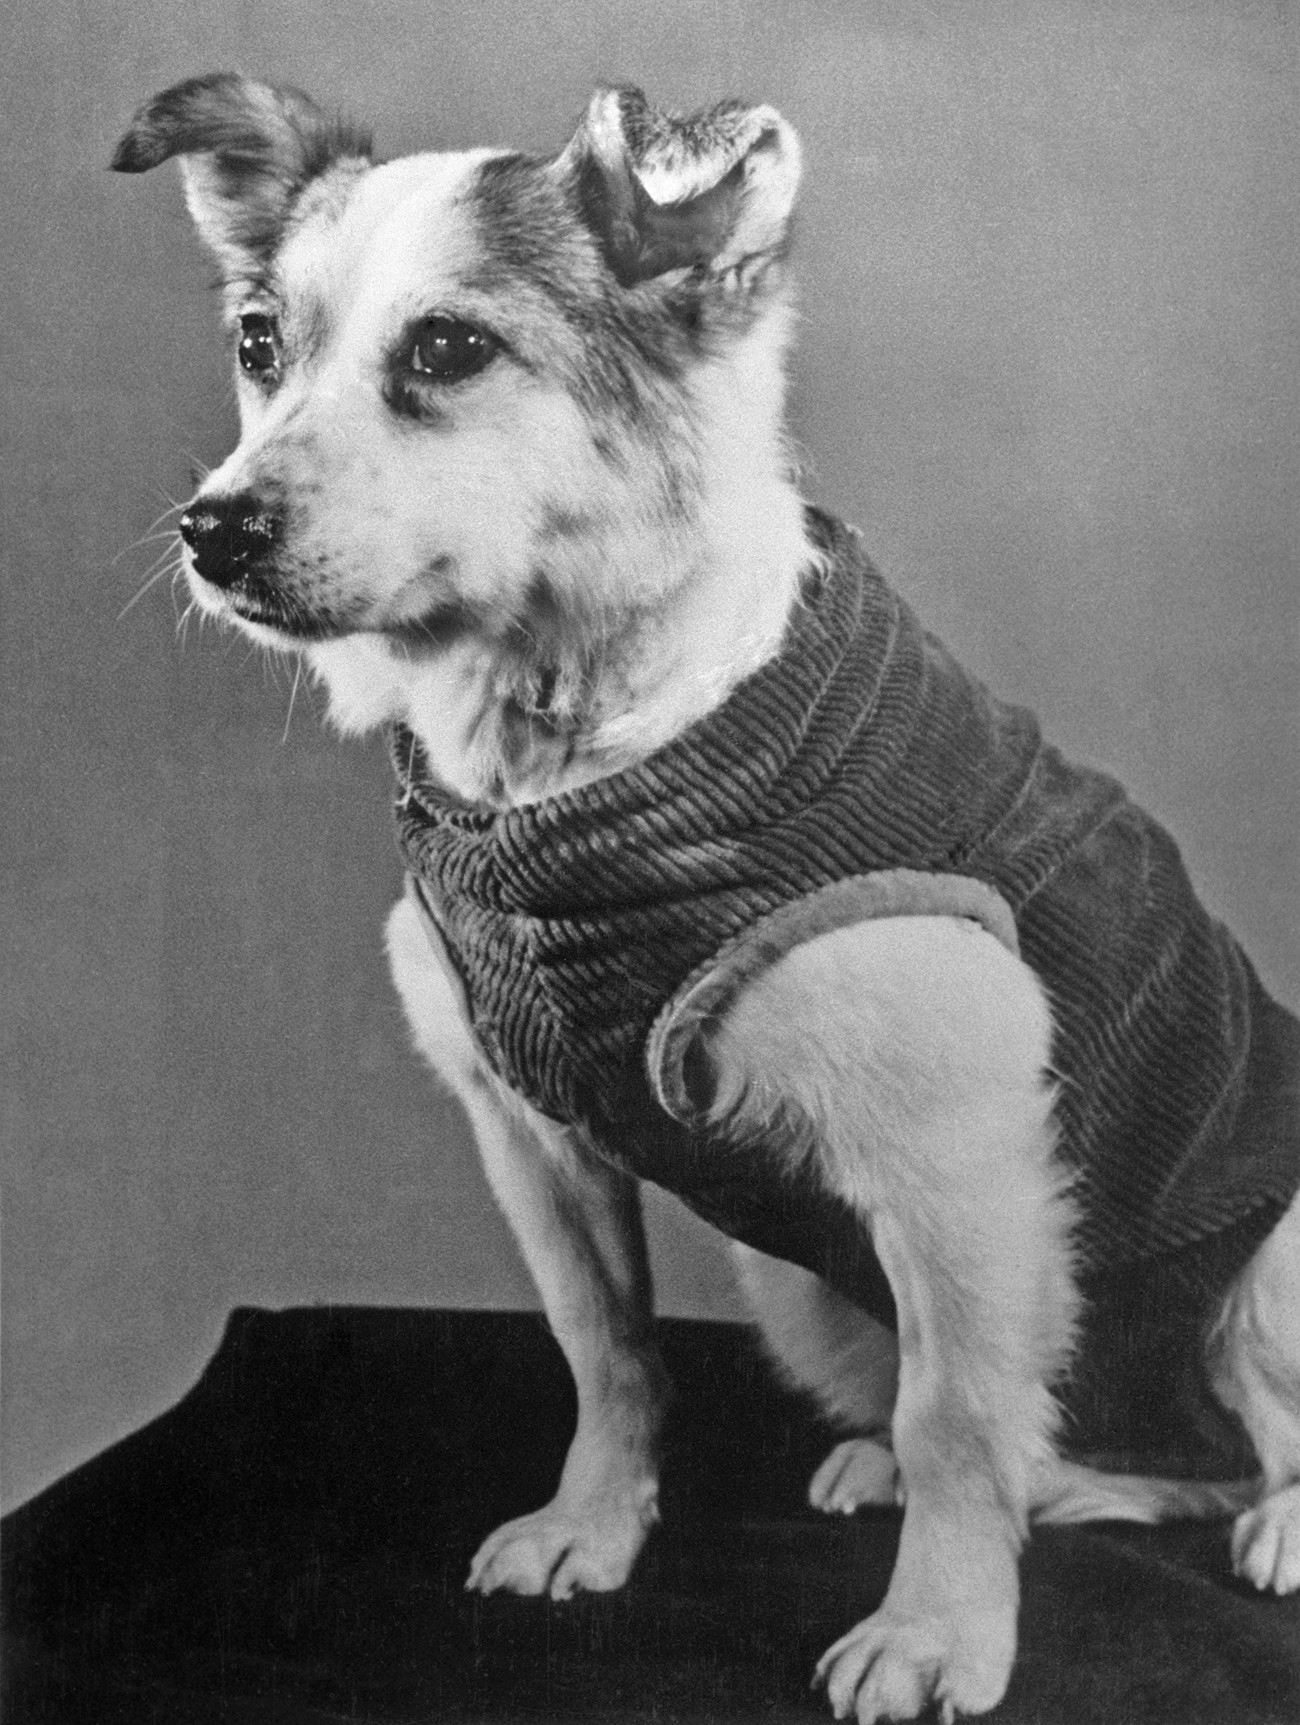 A dog called Zvezdochka (pictured) paved the way for the triumph of Yuri Gagarin's historic mission.